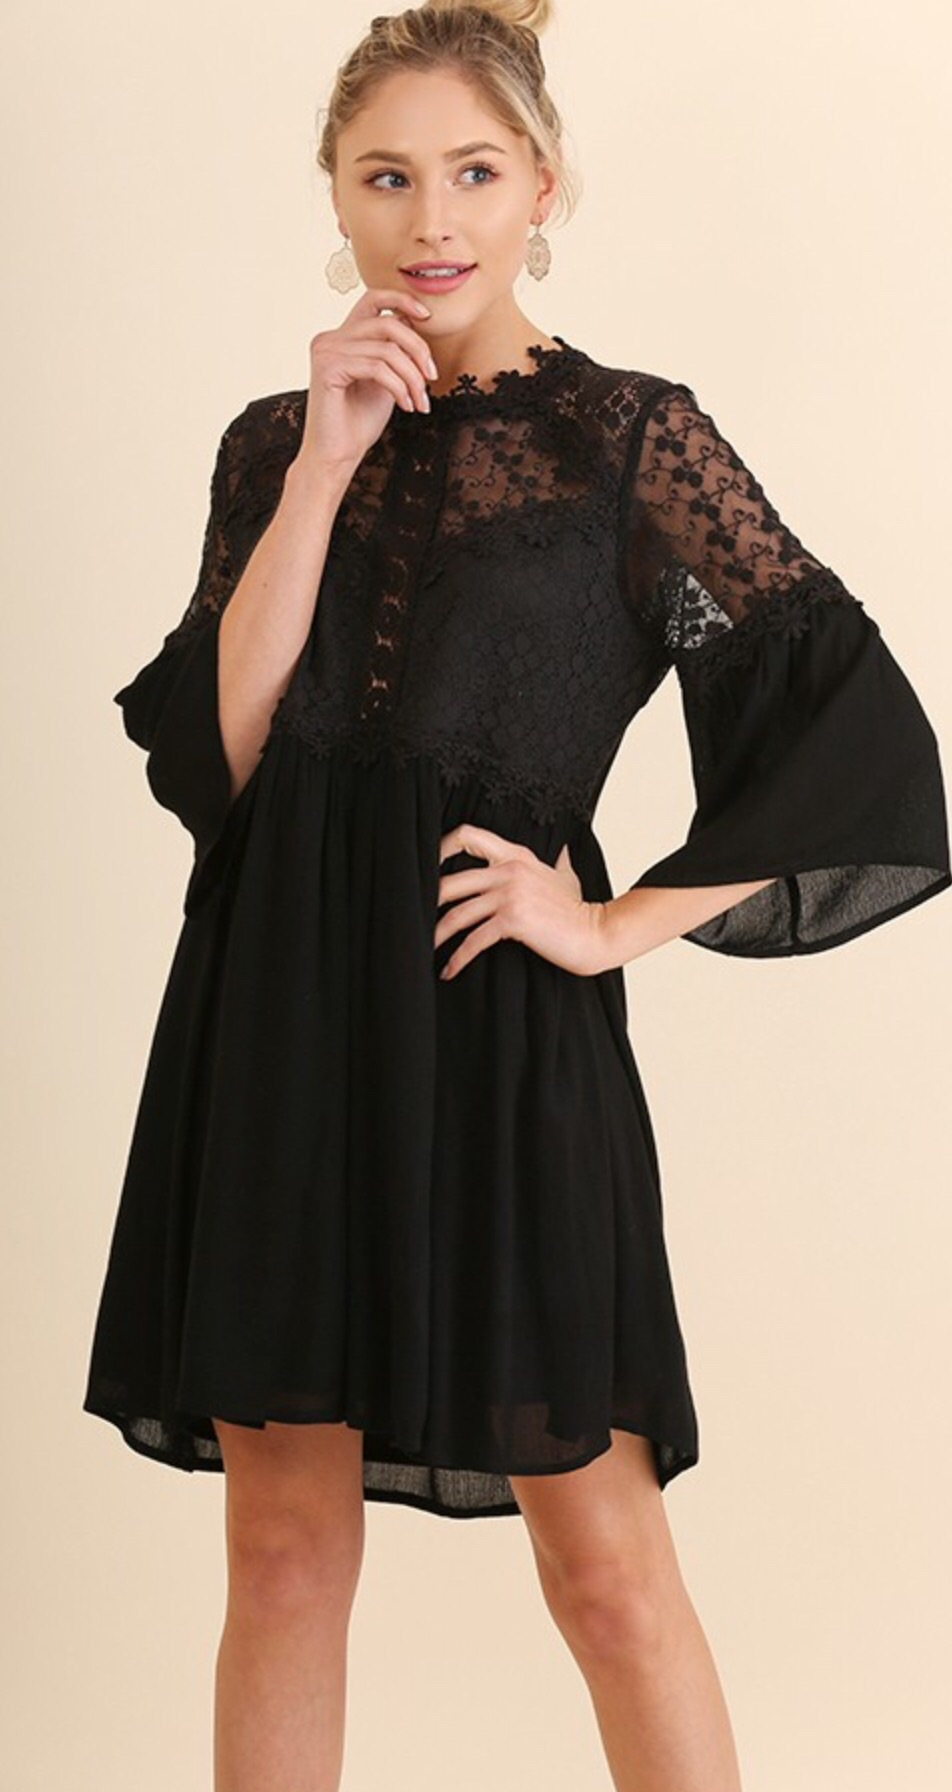 Umgee 3/4 Sleeve Dress with Crochet and Back Cutout Details